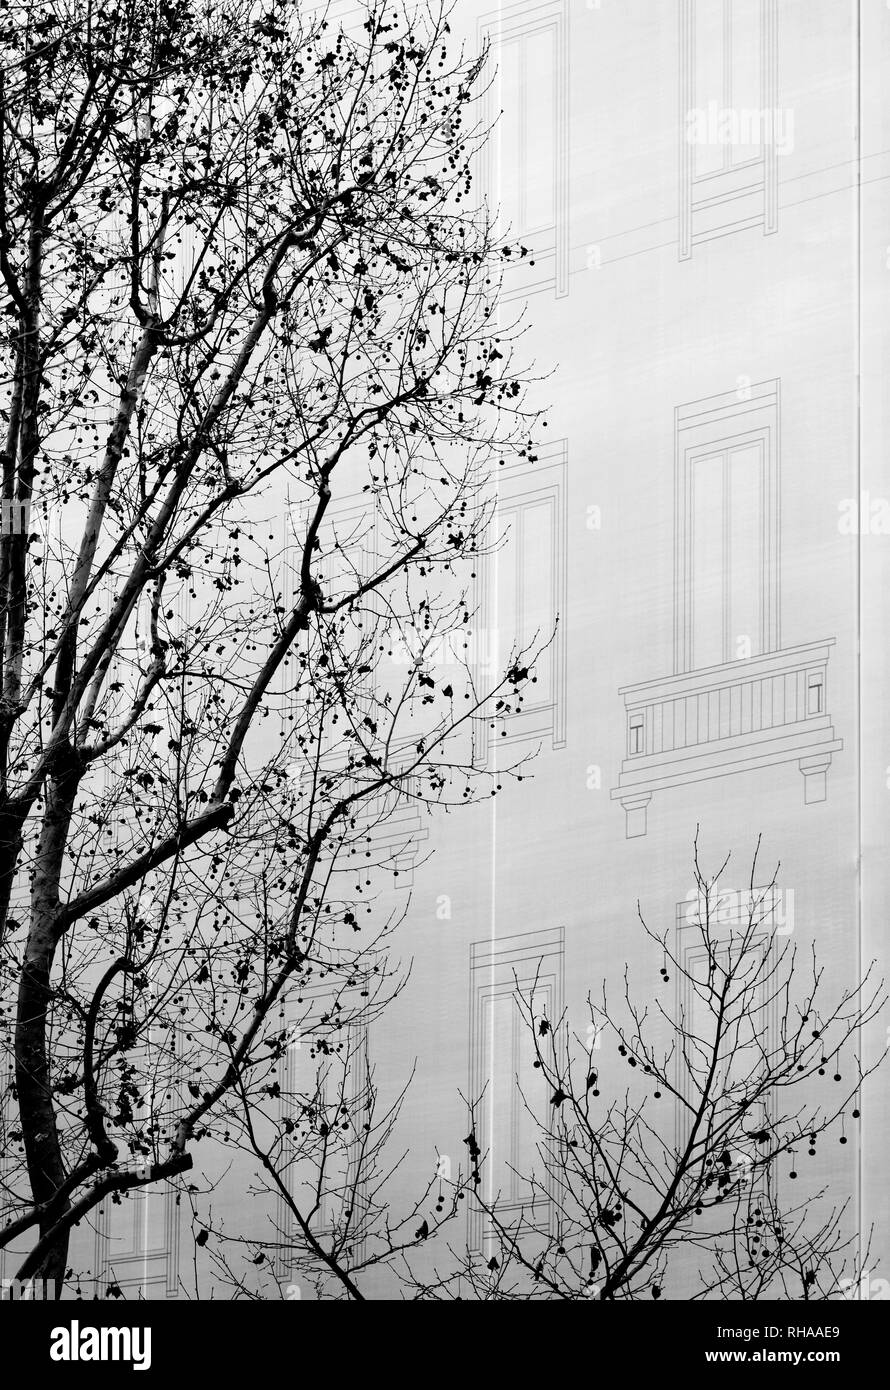 Trees near the facade of a building - Stock Image